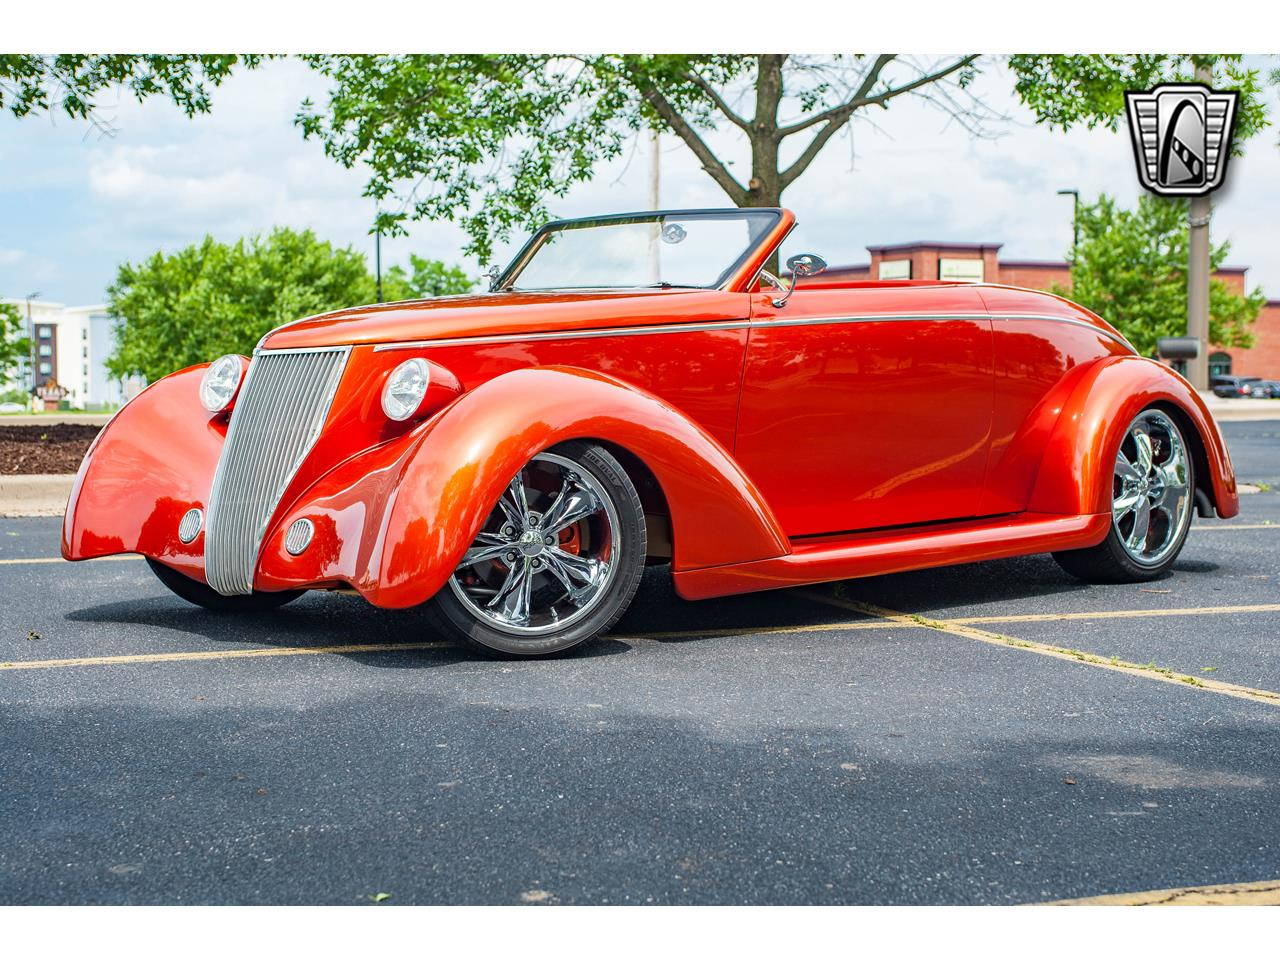 Large Picture of Classic 1936 Ford Roadster located in O'Fallon Illinois - $117,000.00 - QB9T